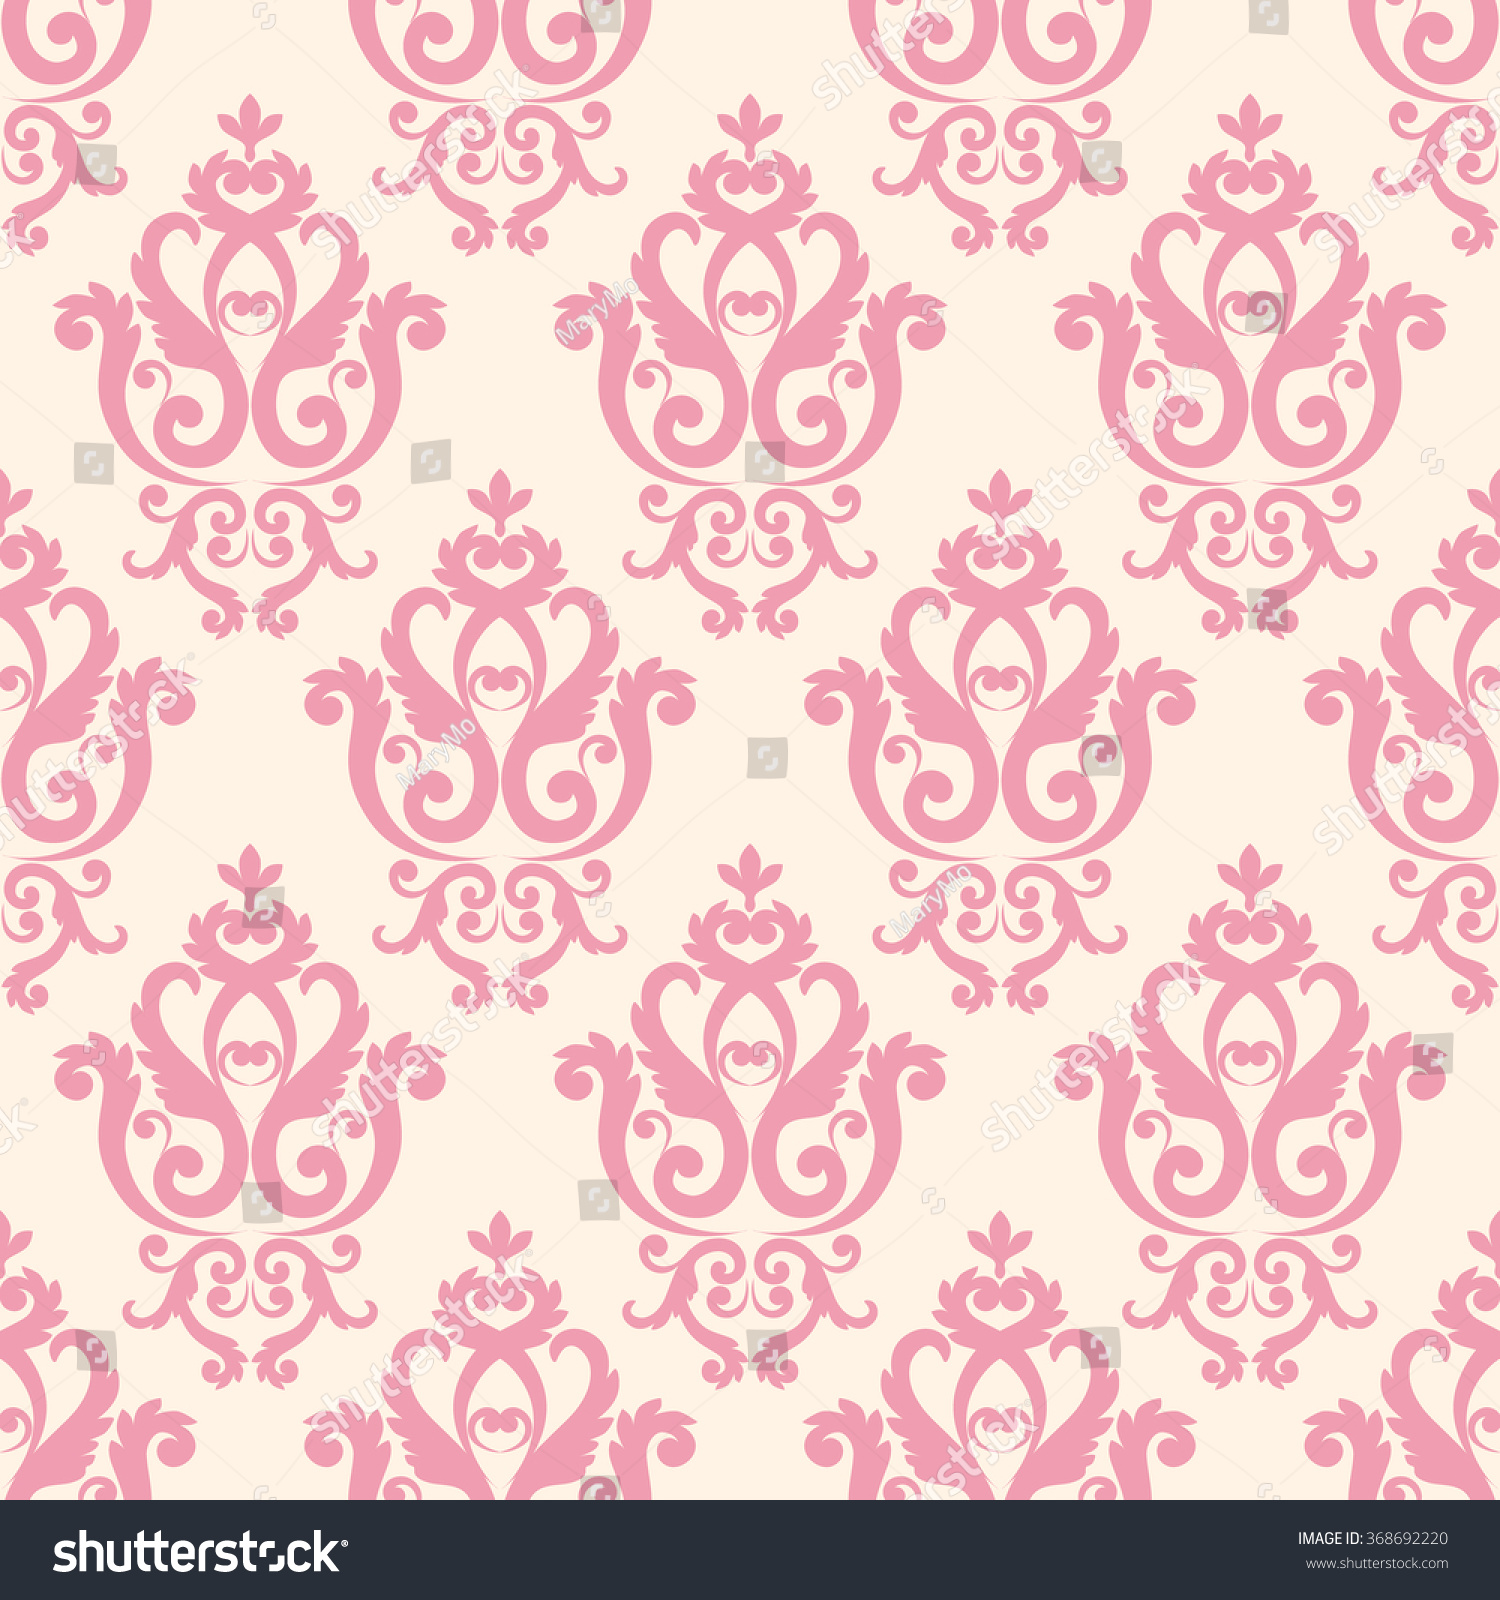 royal pink background - photo #33